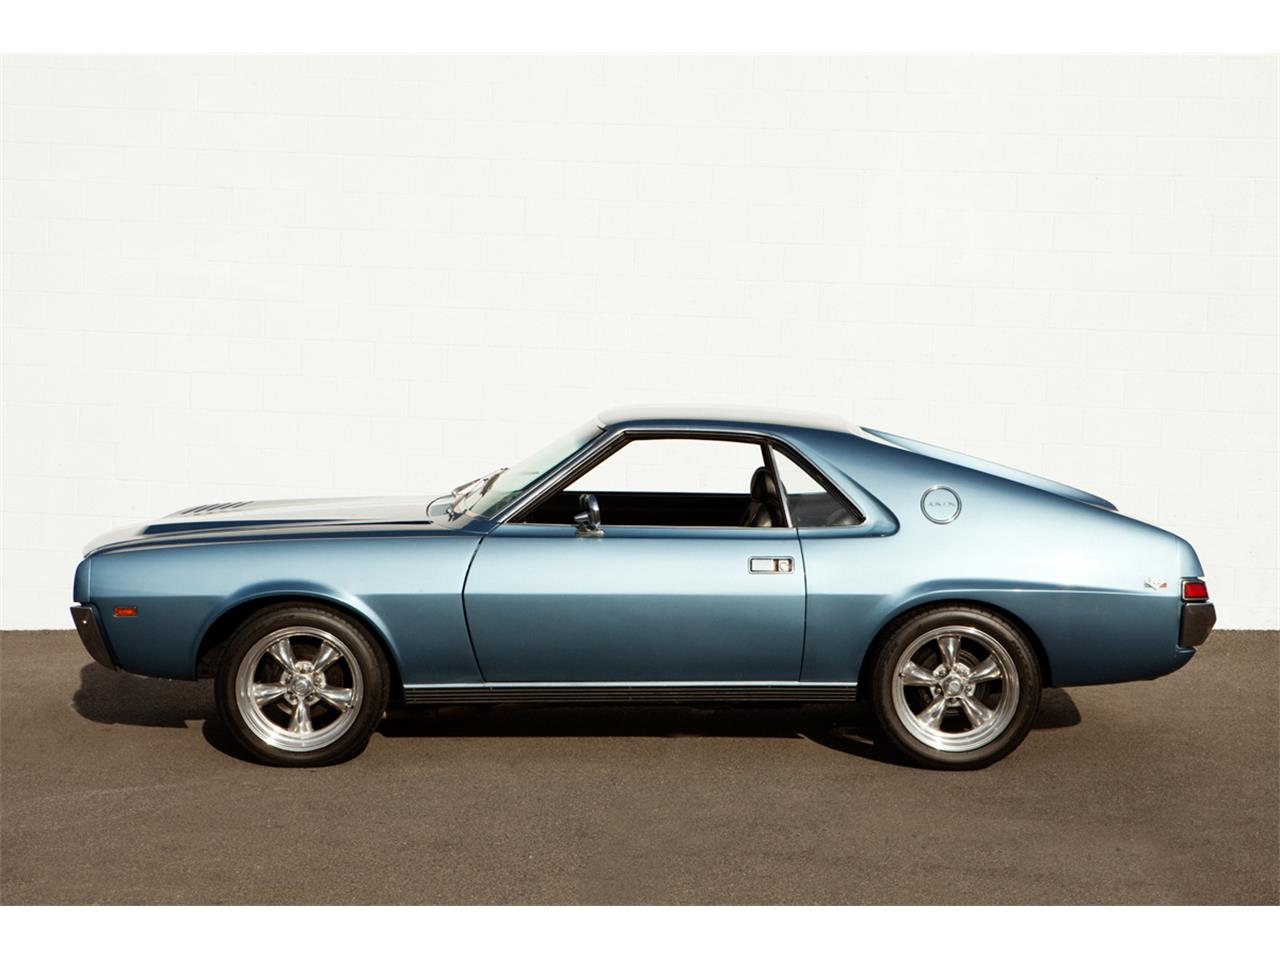 Large Picture of Classic '69 AMX located in Corona California Offered by Gordon Holdings - N025